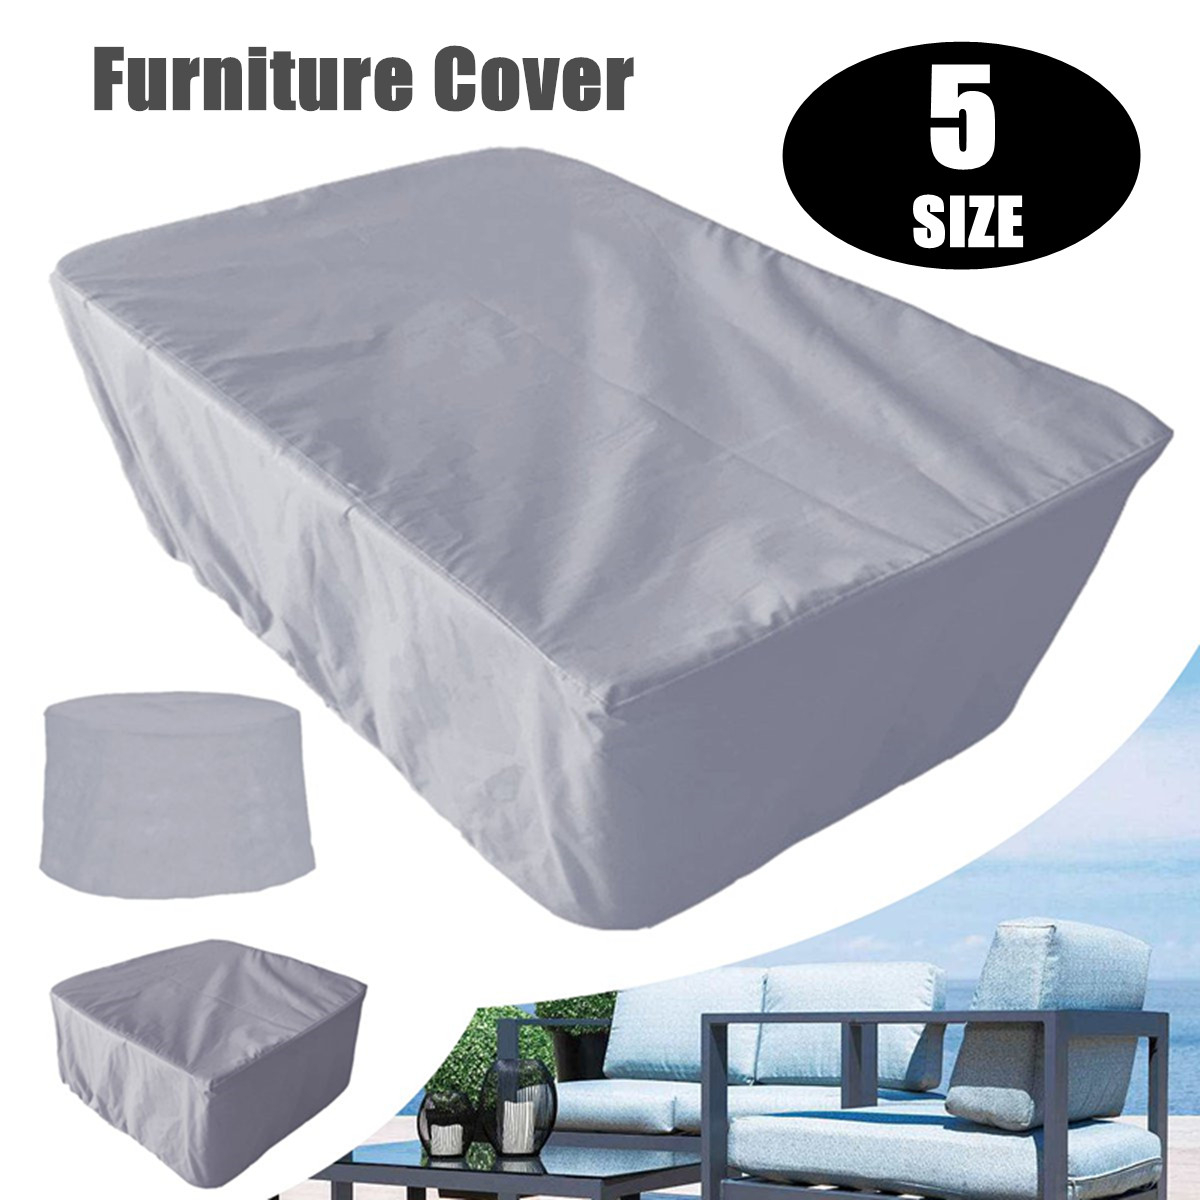 Details About 5 Size Gray Waterproof Garden Patio Furniture Cover Outdoor Shelter U within measurements 1200 X 1200